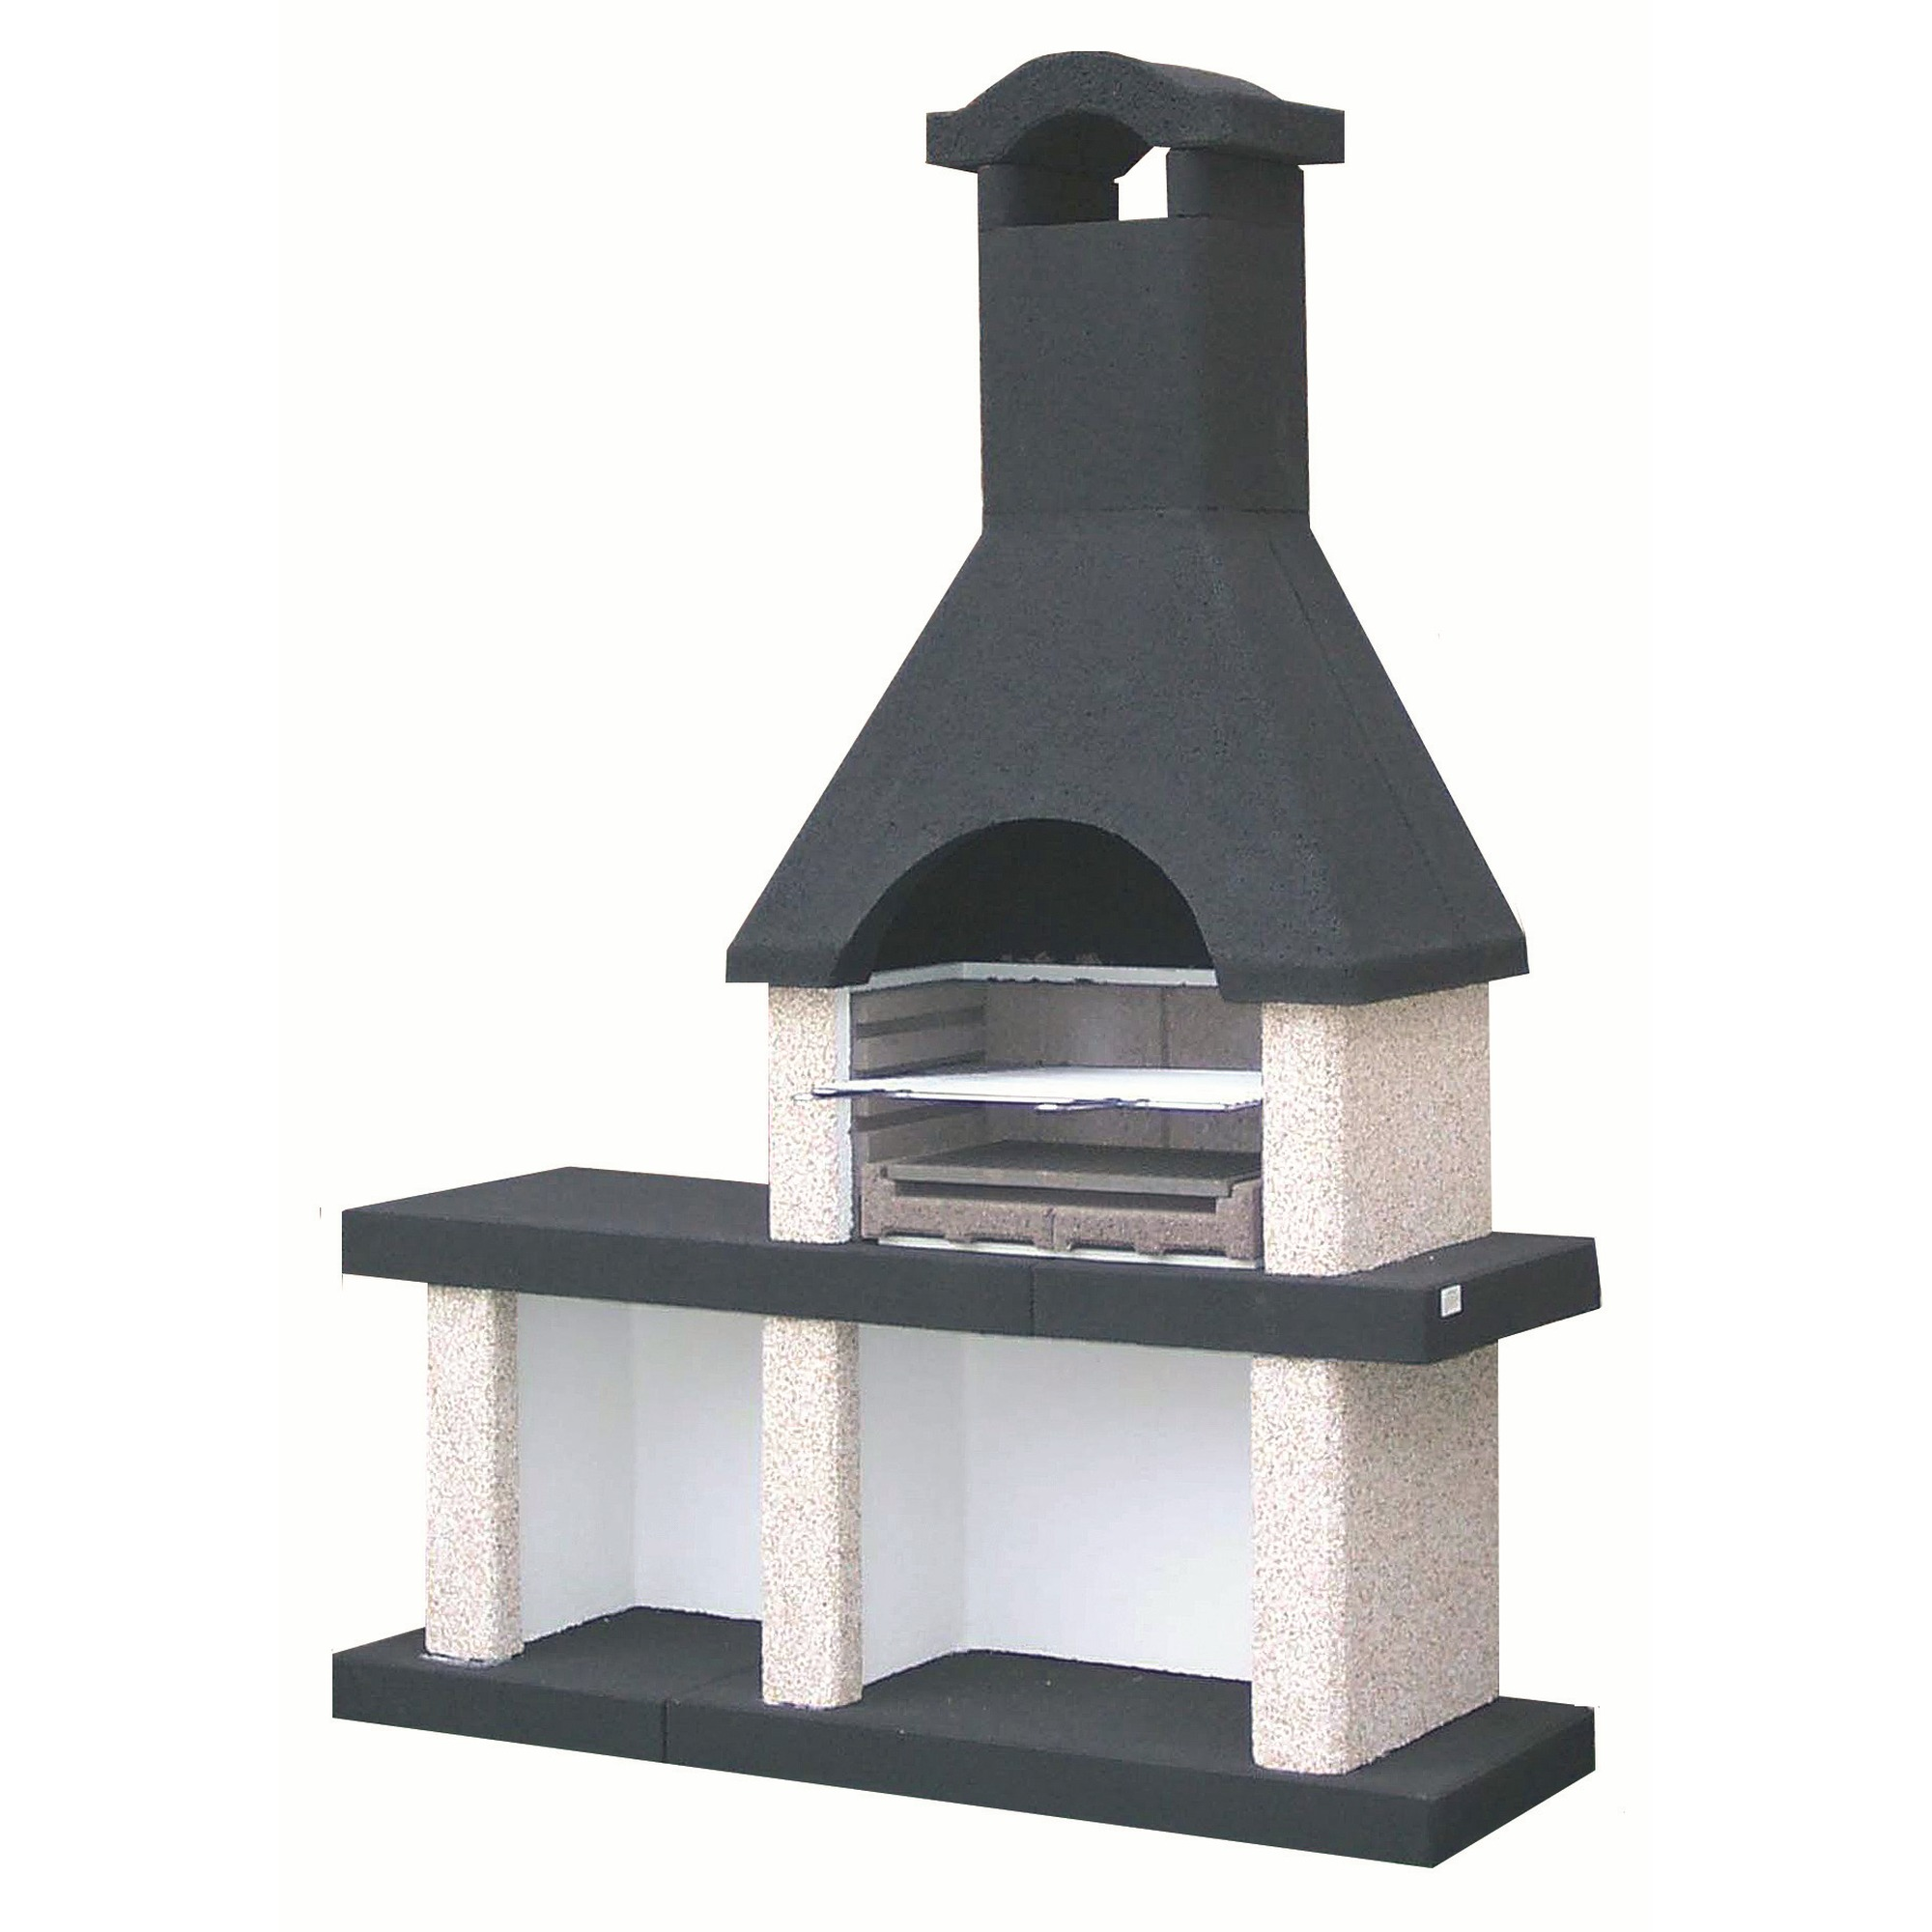 barbecue westerland beton 150x50 cm barbecues barbecue tuin gamma. Black Bedroom Furniture Sets. Home Design Ideas